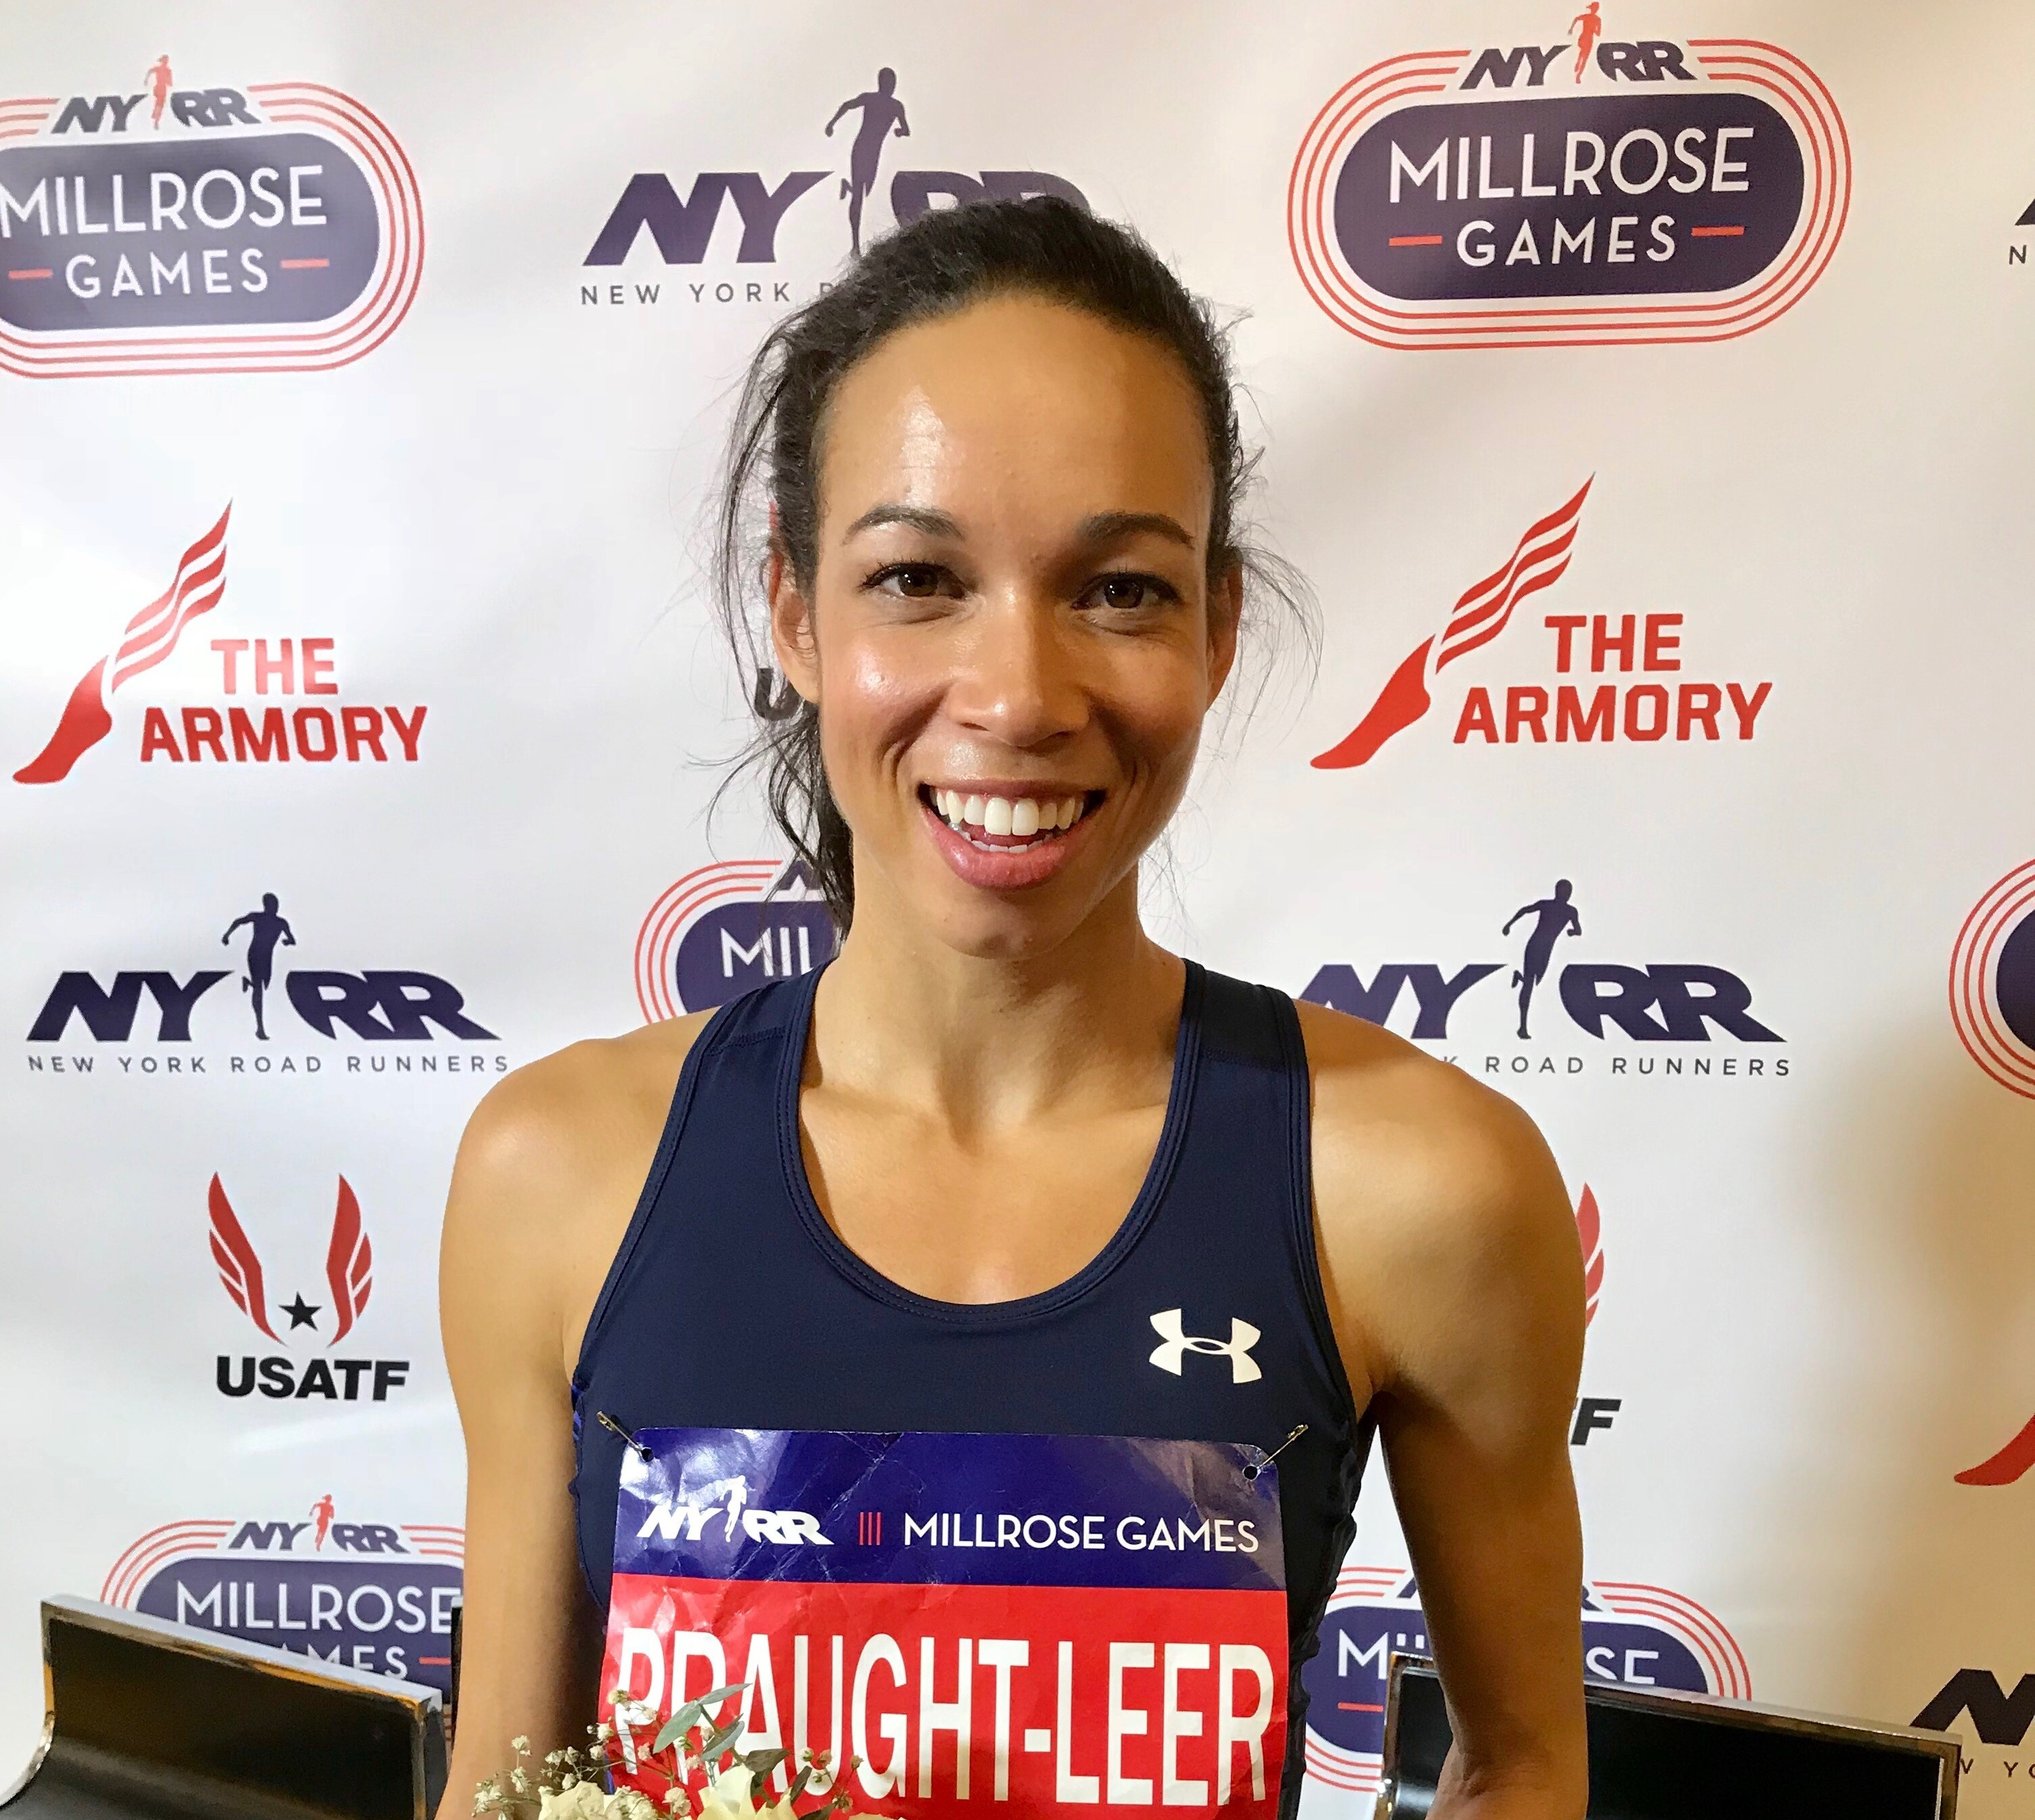 Track & Field superstars Aisha Praught-Leer and Emma Coburn, will reunite in the Women's 3,000m during the 112th NYRR Millrose Games on Saturday February 9th